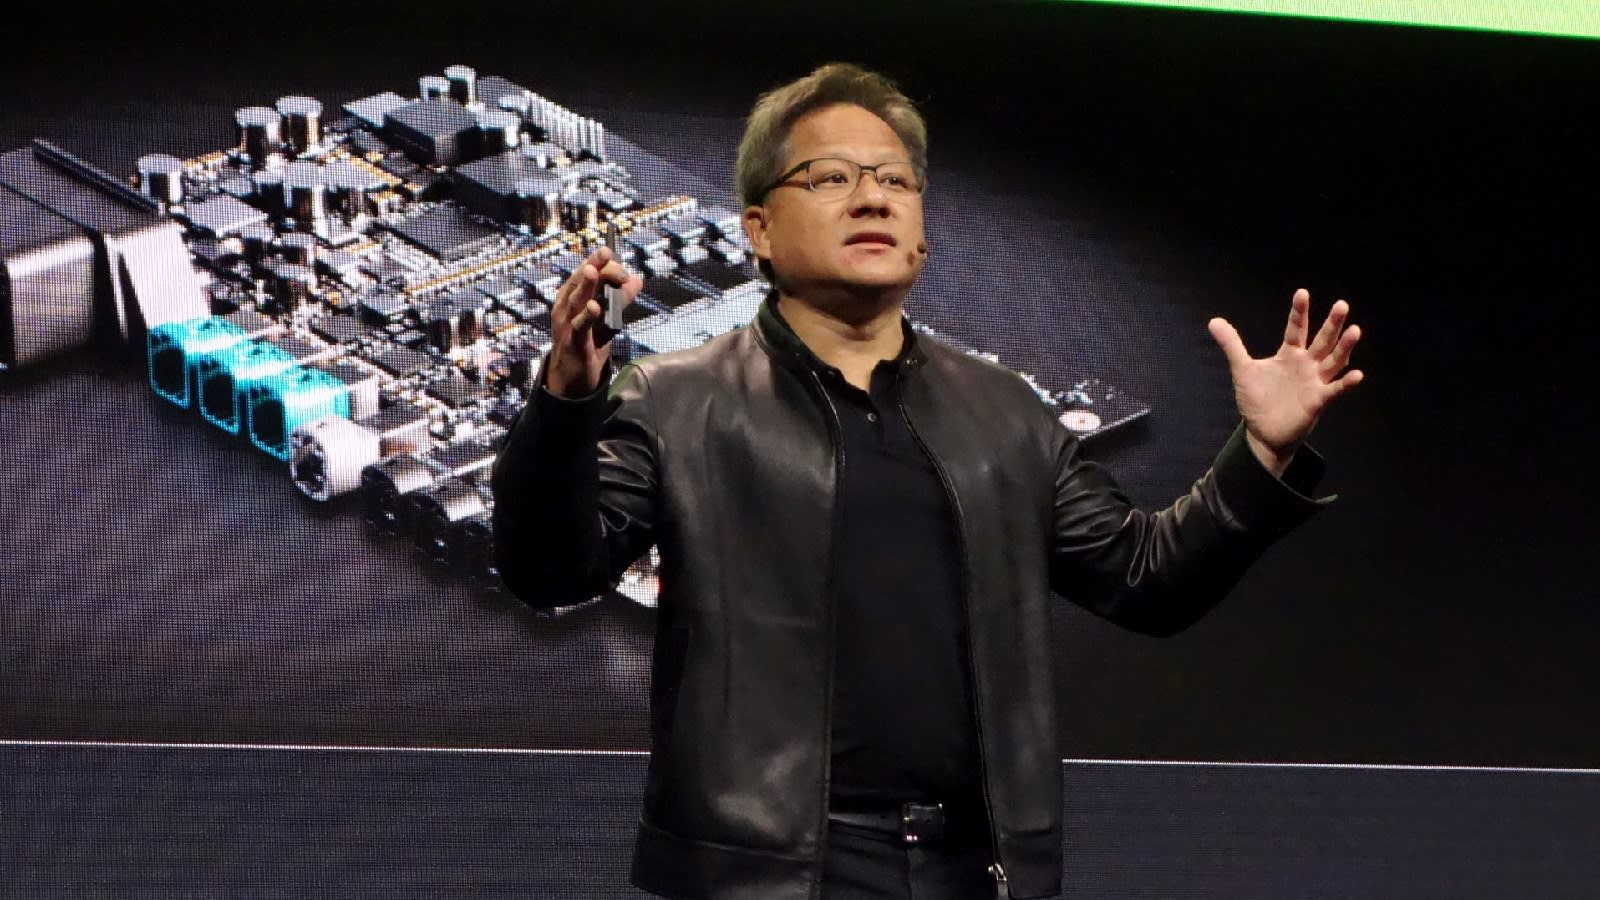 Nvidia S Ceo Says Moore S Law Is Dead In Ces 2019